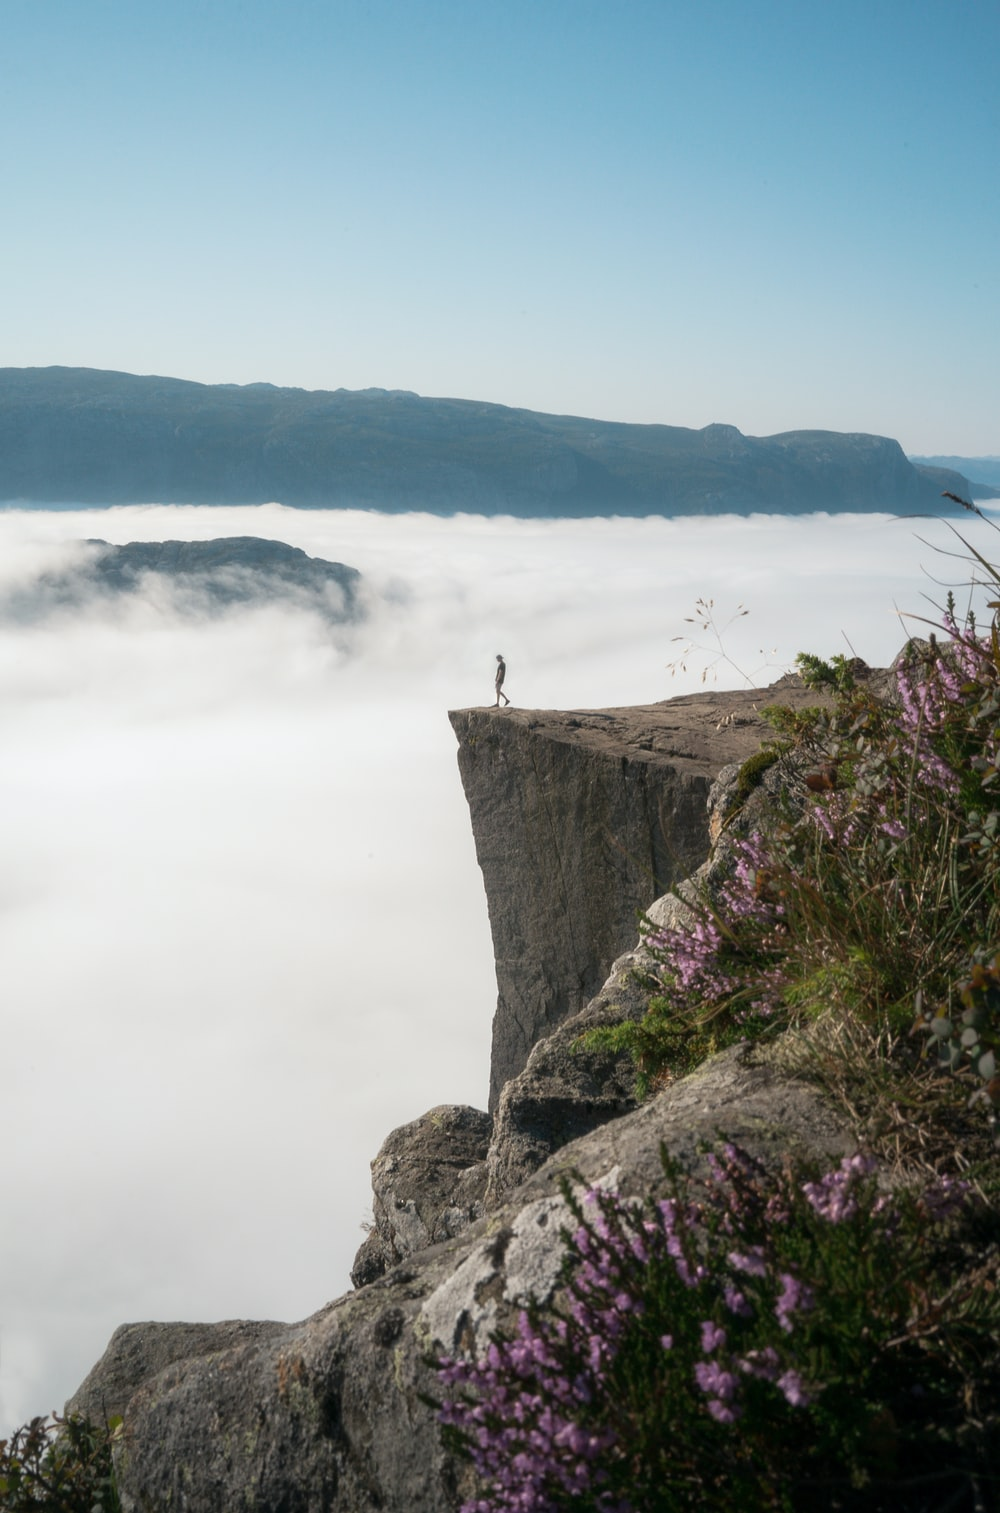 person standing on cliff near body of water during daytime